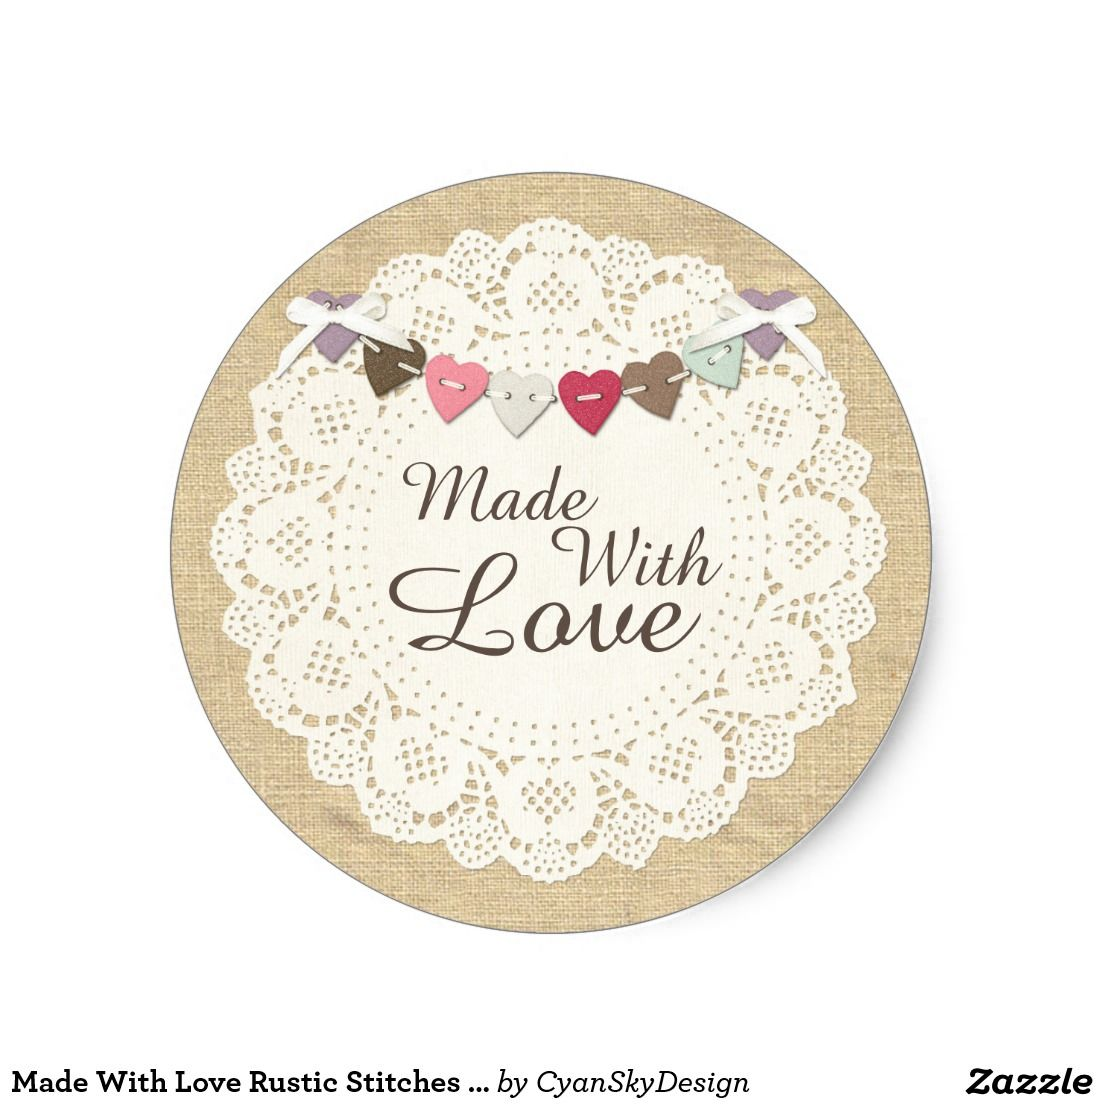 Handmade Sewing Business Packaging Made With Love Rustic Stitches Sew Classic Round Sticker On Zazzle Burlap Vintage Doily Hearts Bunting